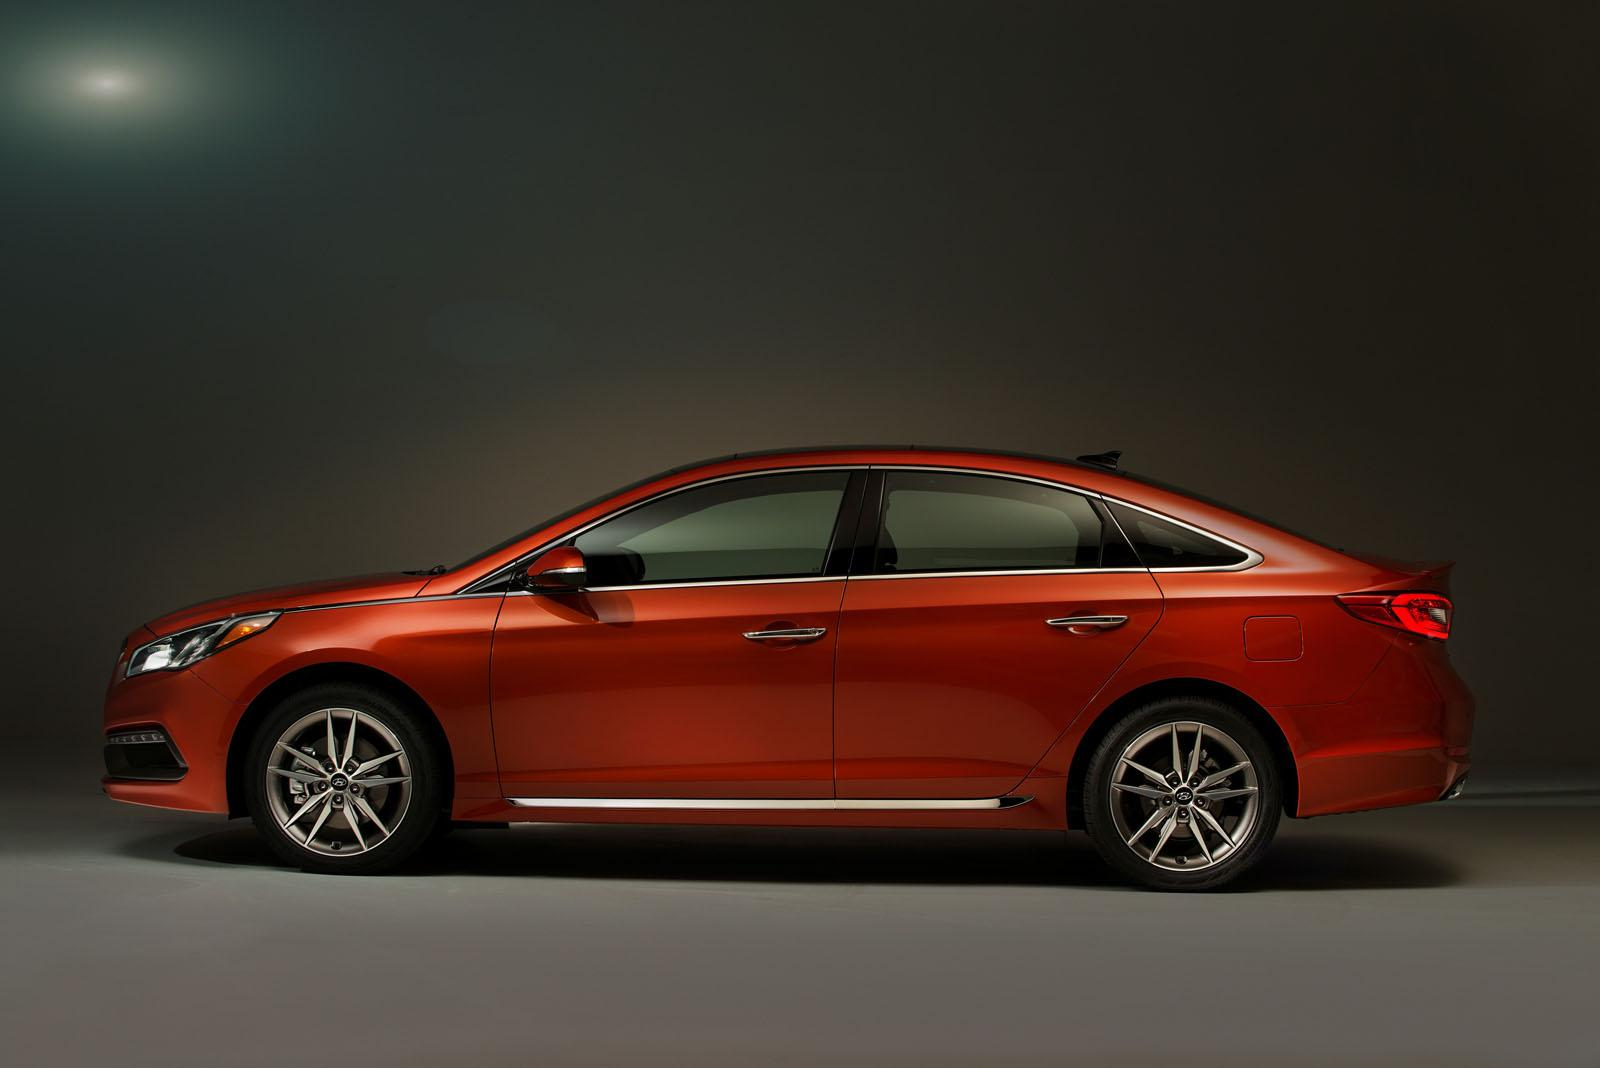 2015 hyundai sonata is competitive mid size sedan cr finds autoevolution. Black Bedroom Furniture Sets. Home Design Ideas